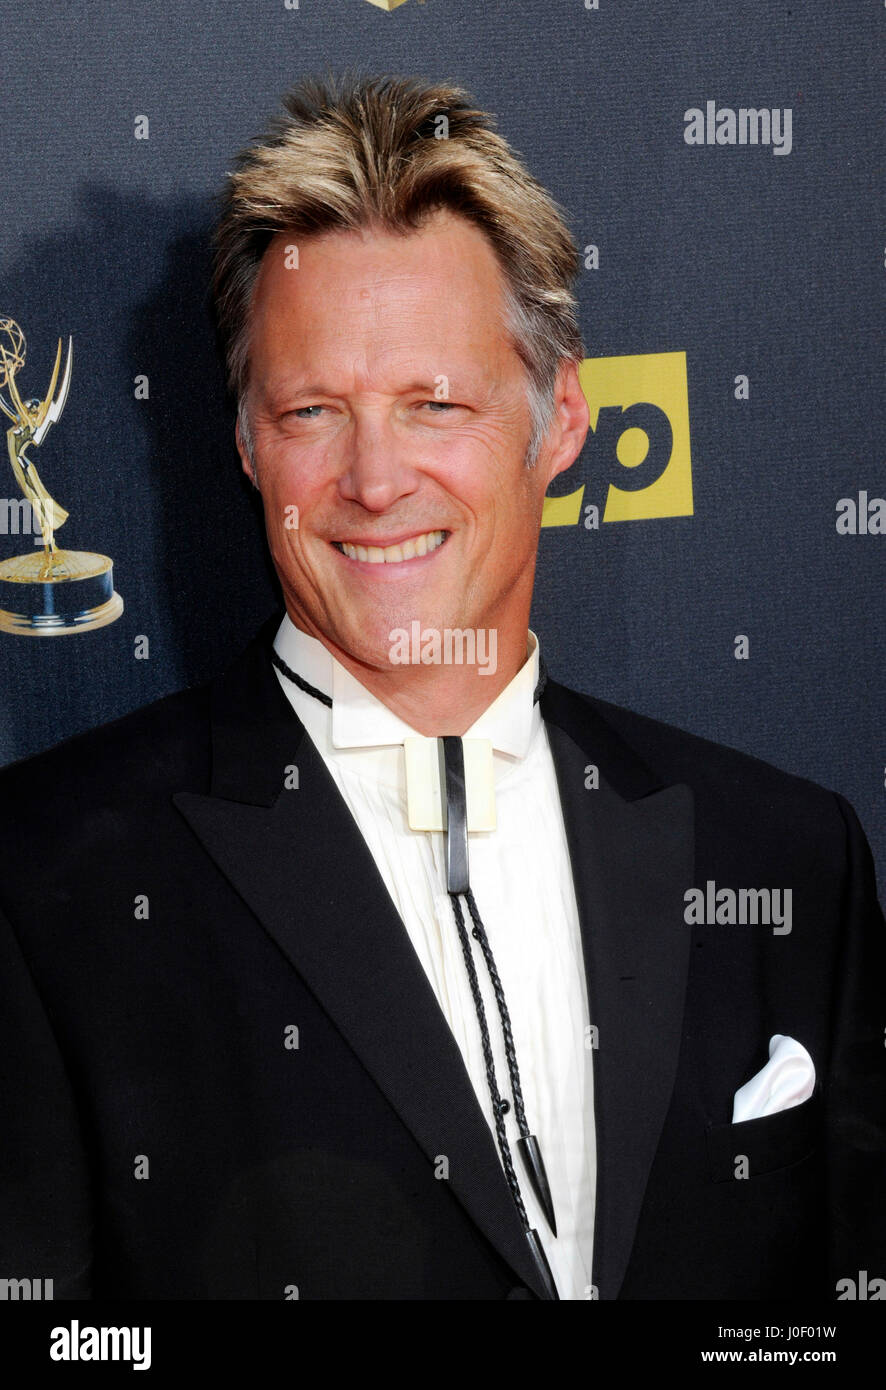 Matthew Ashford attends the 42nd annual Daytime Emmy Awards at Warner Bros. Studios on April 26th, 2015 in Burbank, - Stock Image